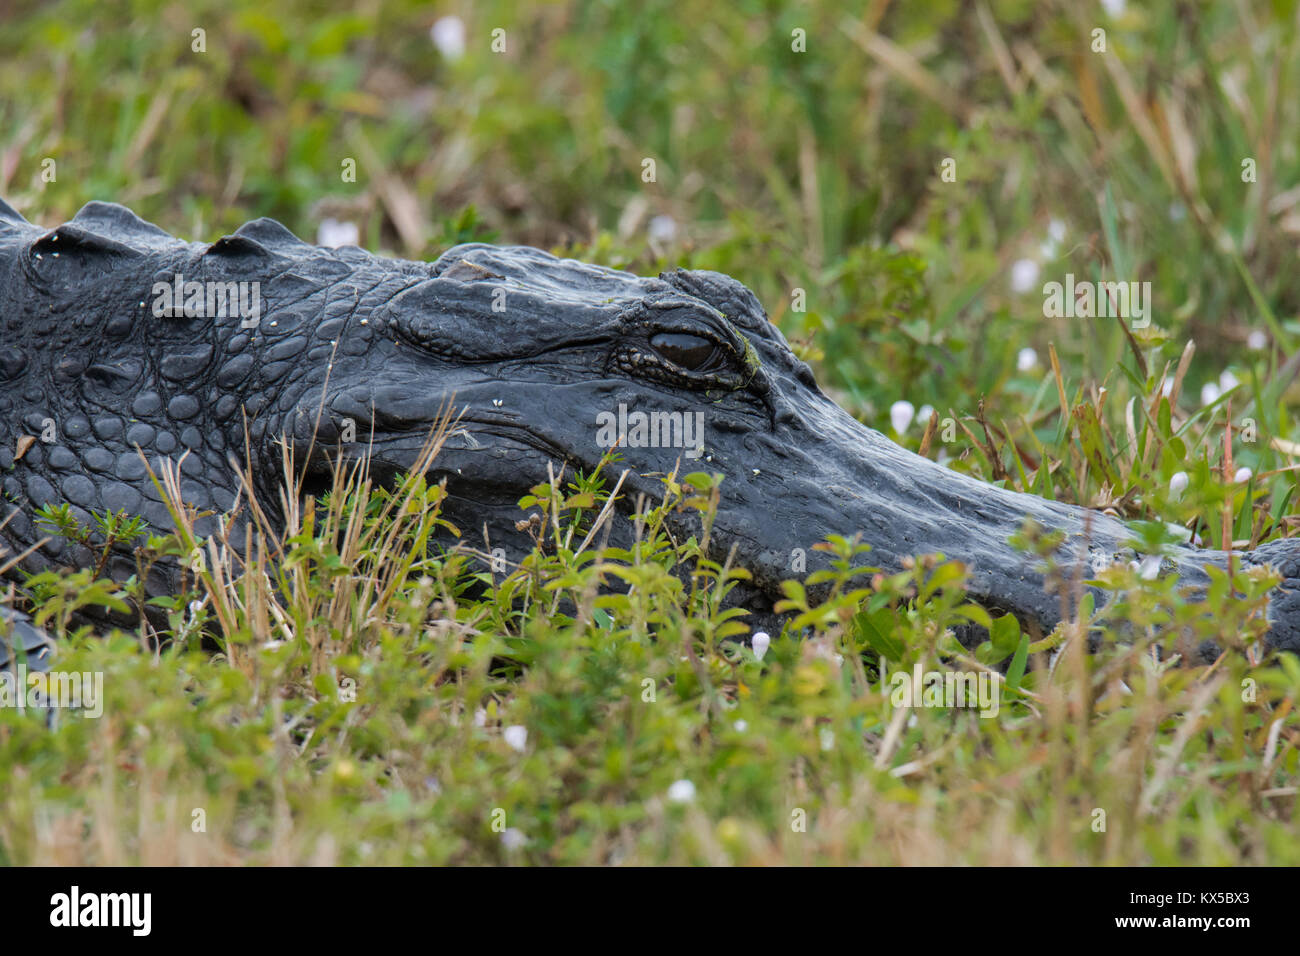 Alligator close-up in the grass - Stock Image